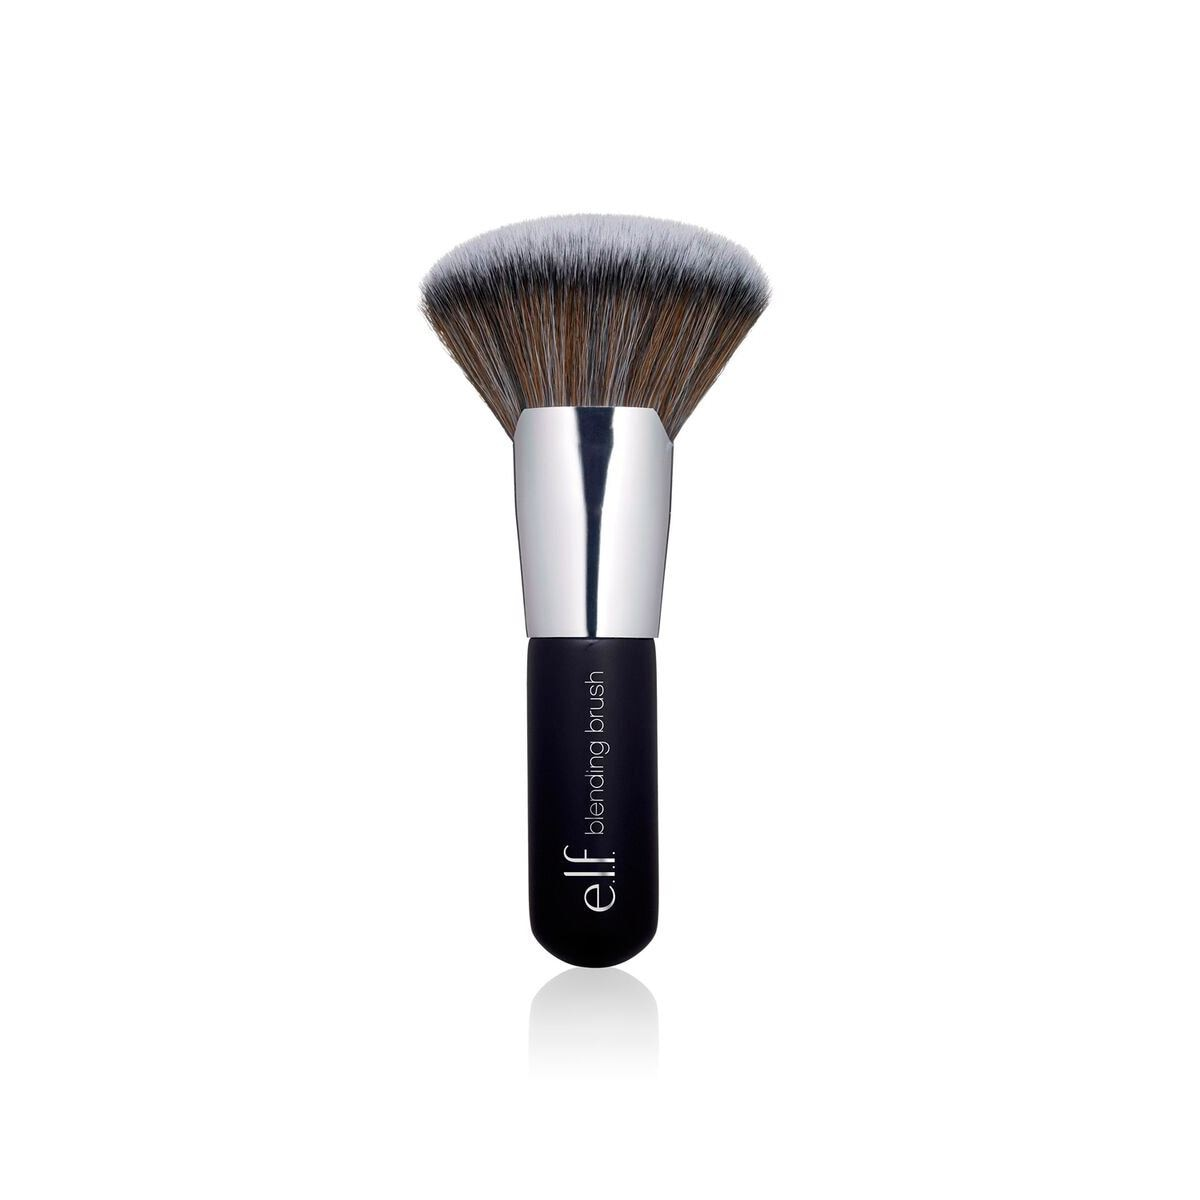 Bb blending brush  - Sanborns